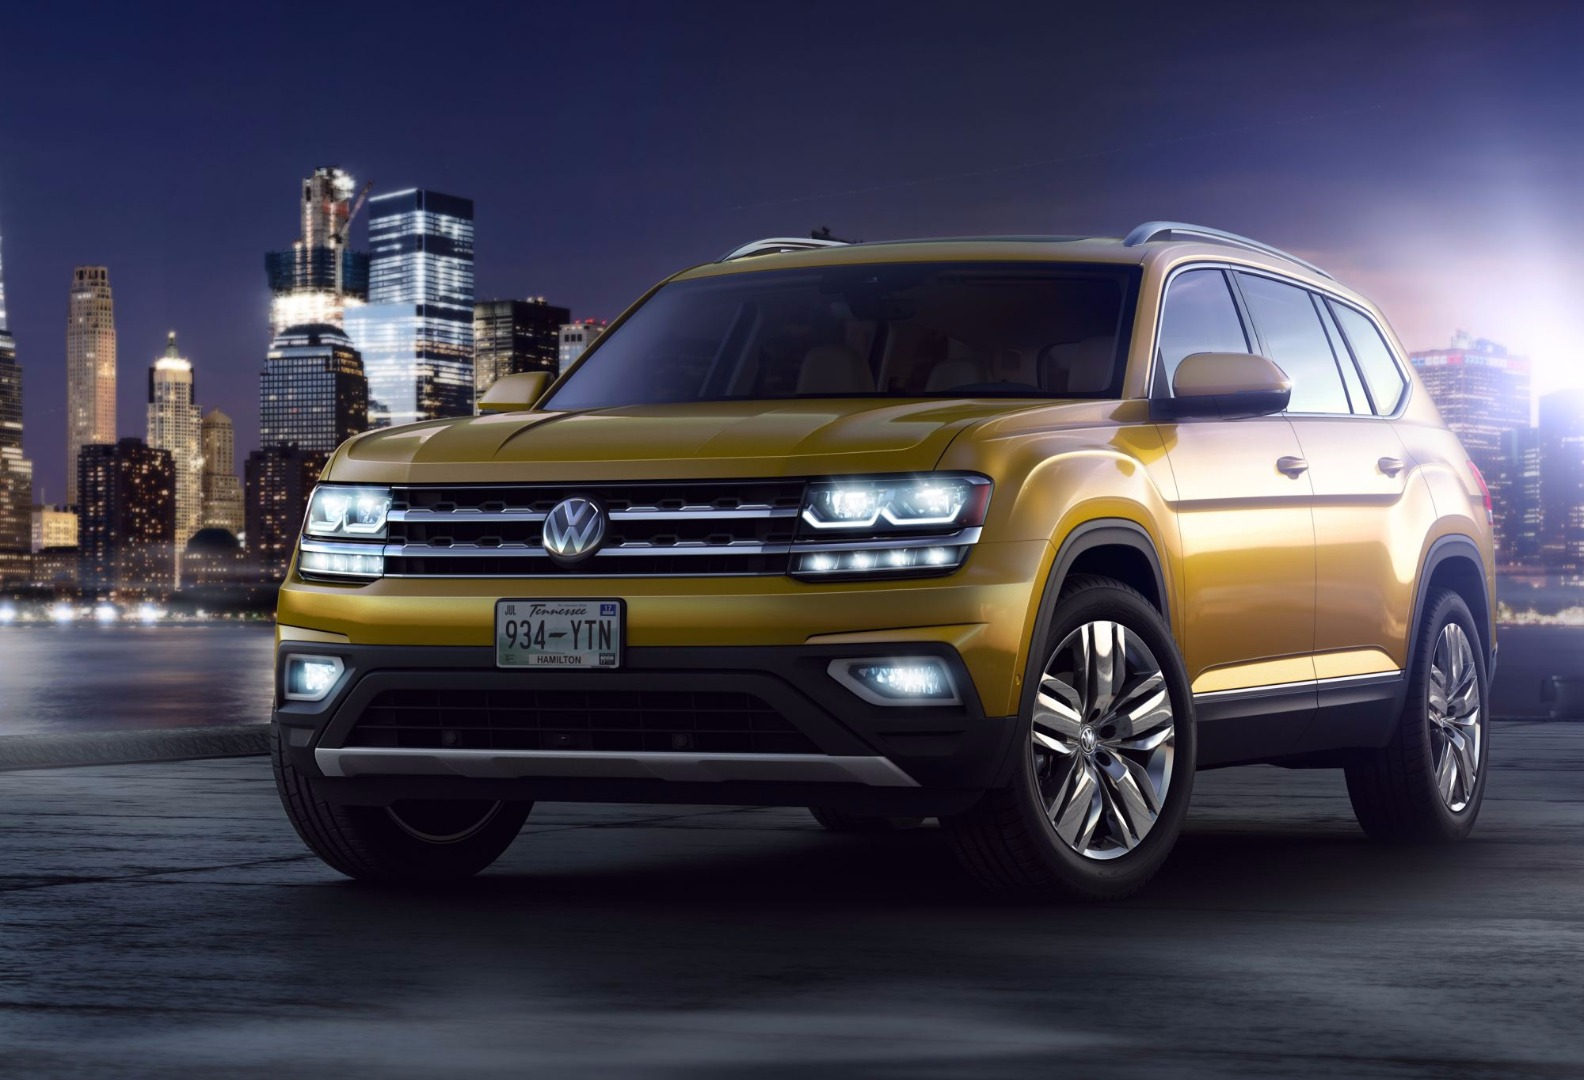 News - VW's Large Atlas SUV Could Reach Europe And Beyond